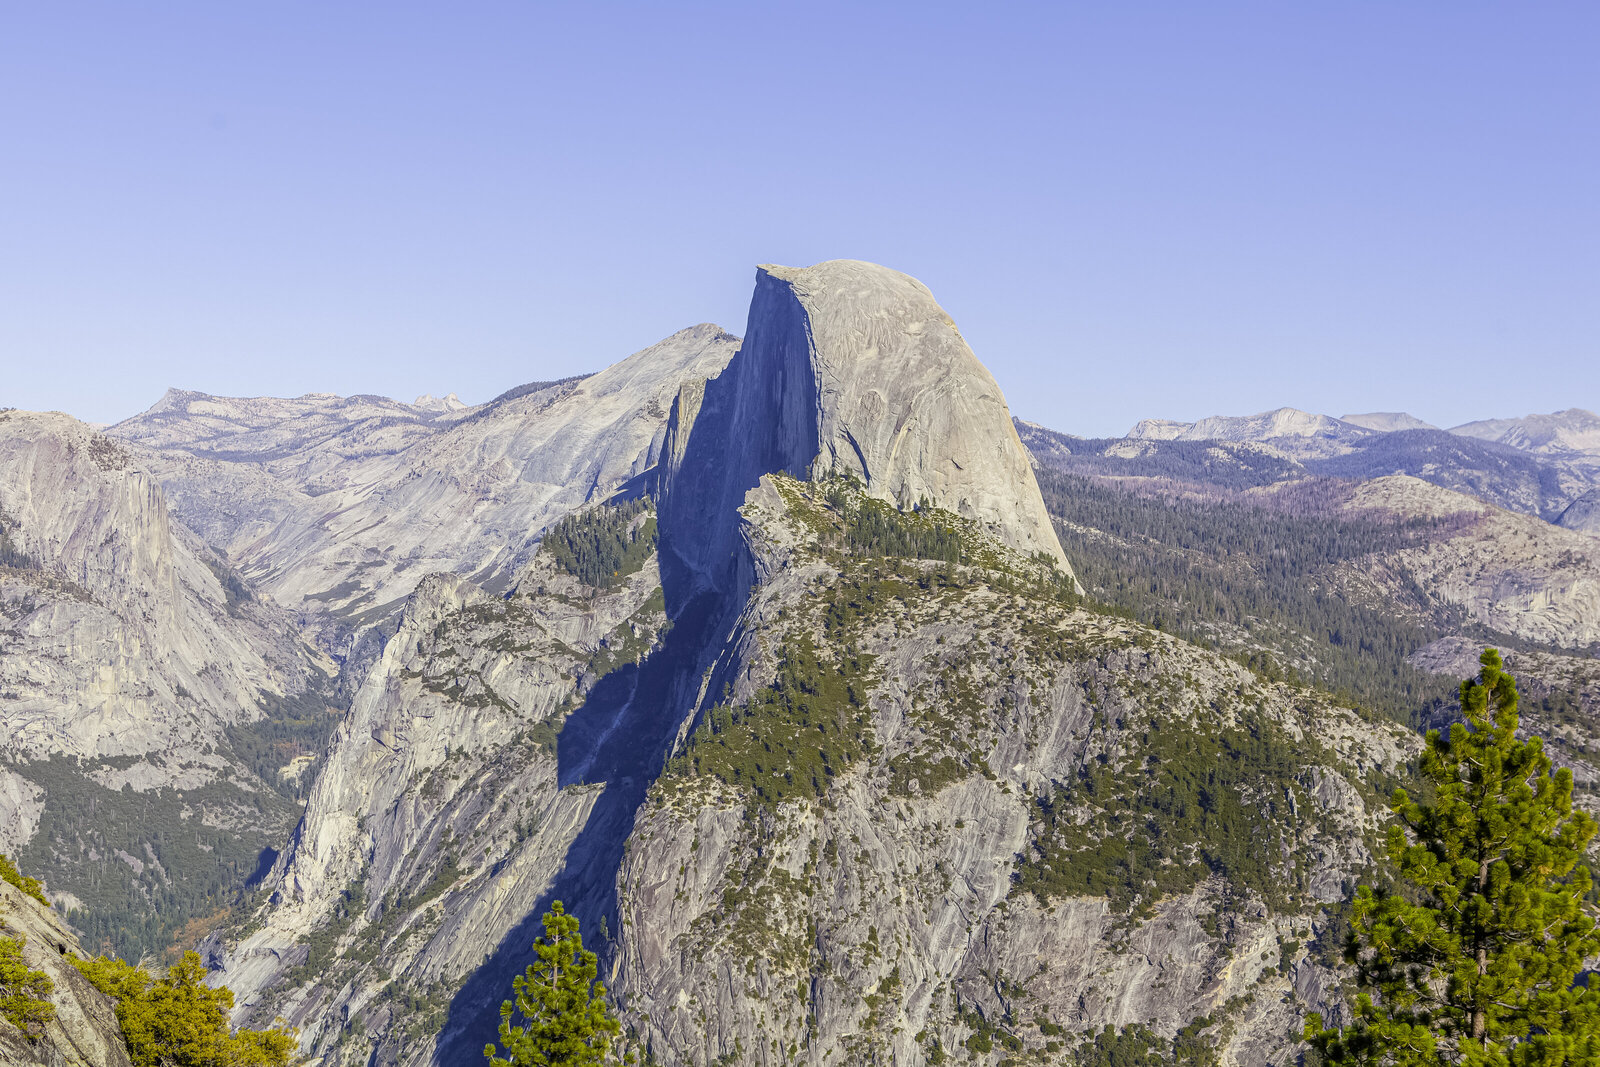 081-KBP-Yosemite-National-Park-004